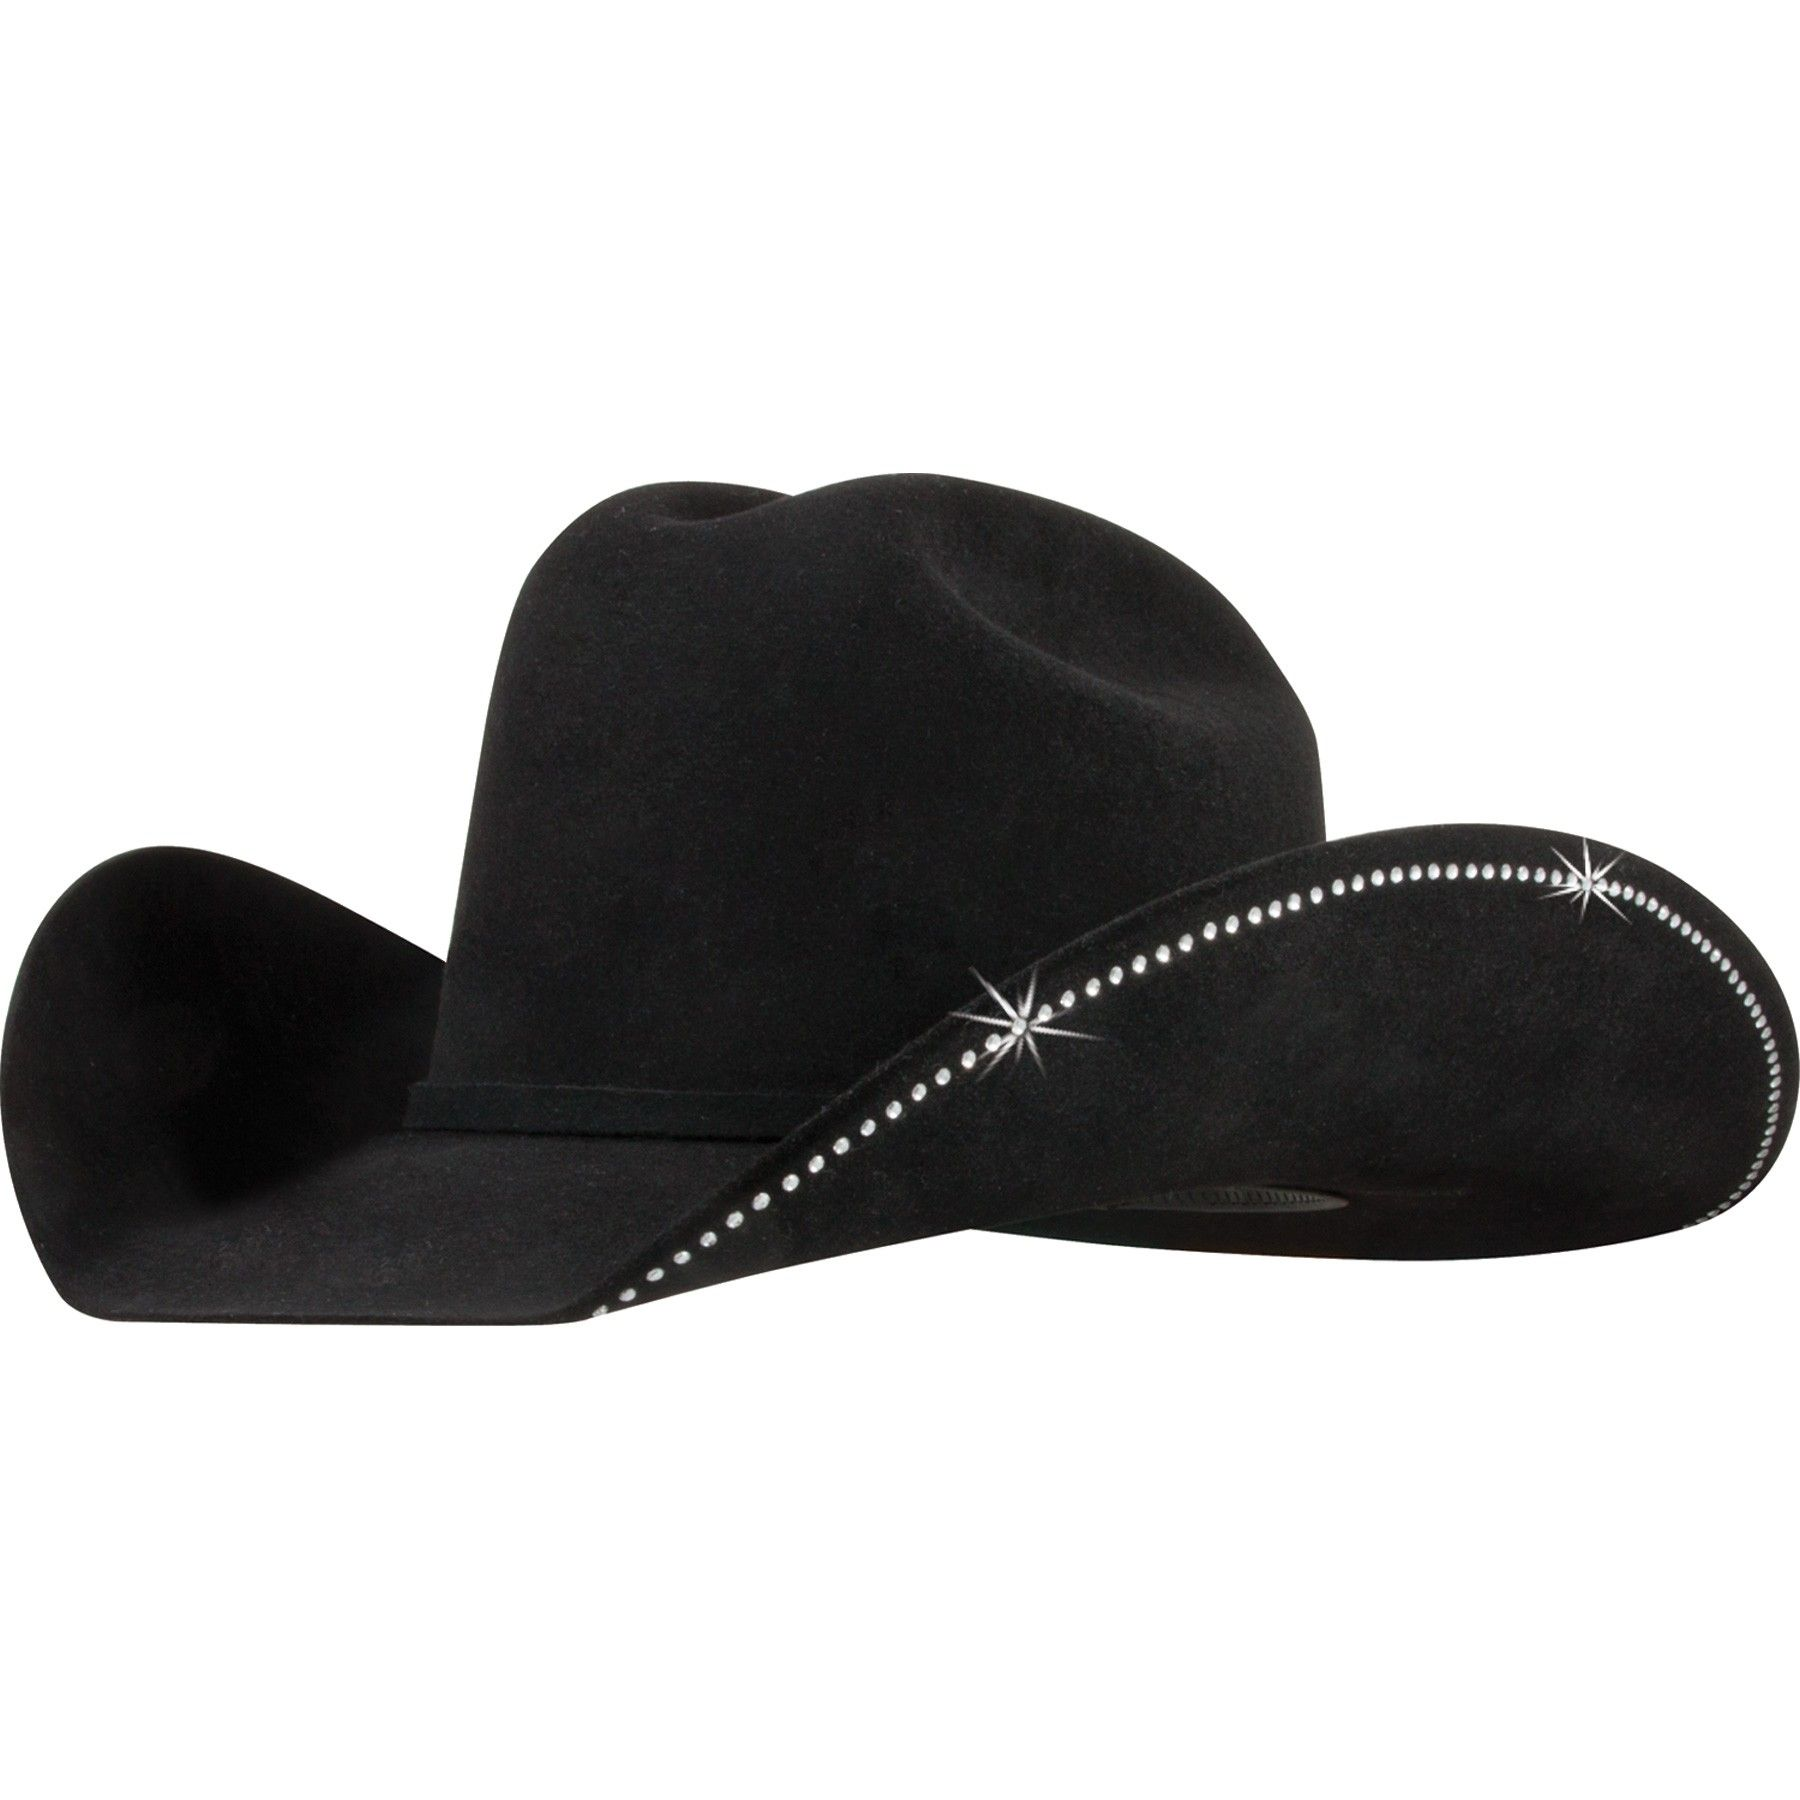 5285e6e6b Serratelli 4X Black Hat with Crystal Edge in 2019 | farmer's ...